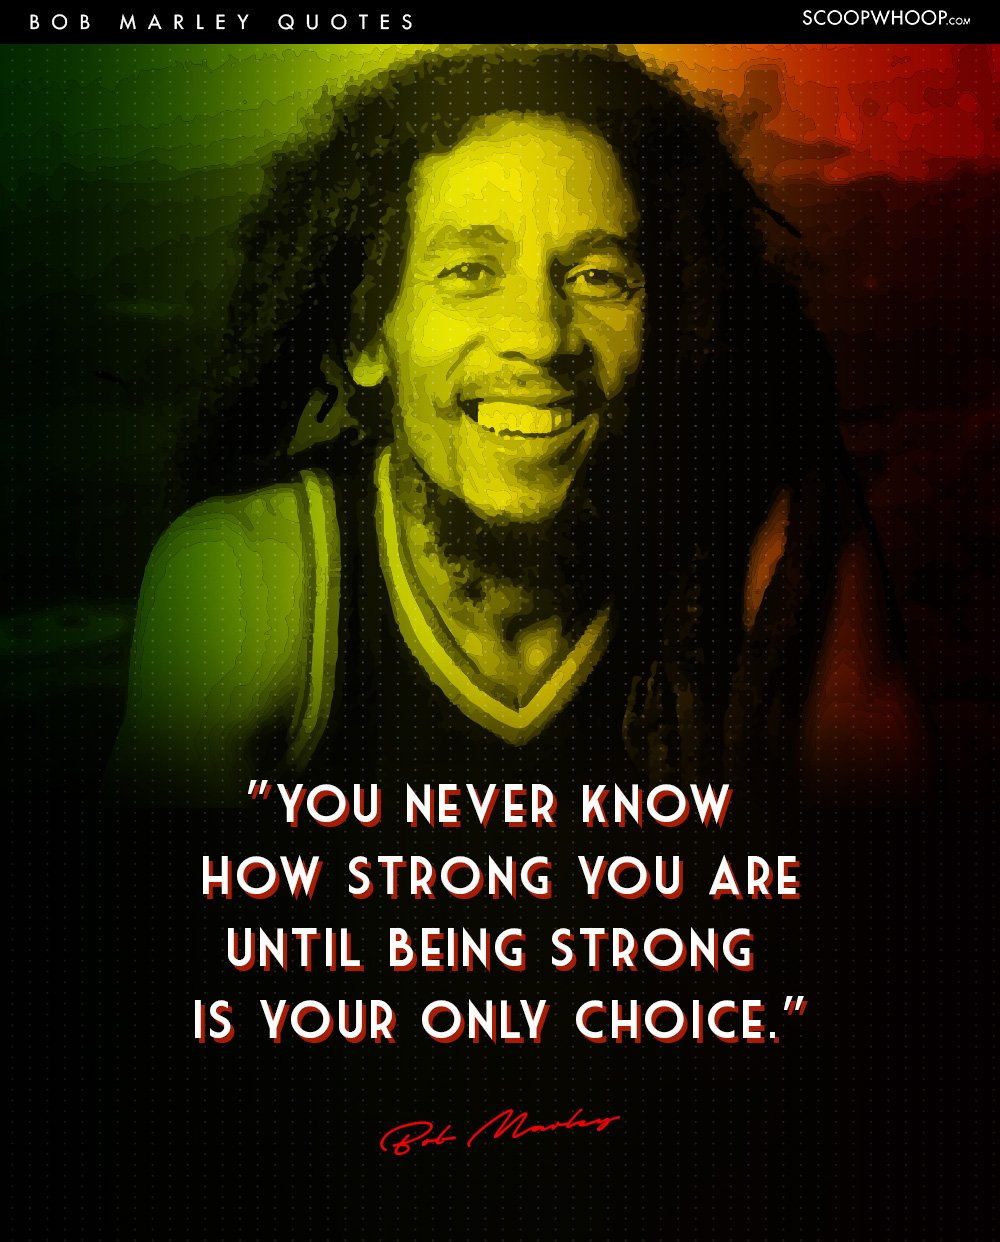 Bob Marley Quotes 15 Bob Marley Quotes That Tell Us Why Life Is All About Living In  Bob Marley Quotes